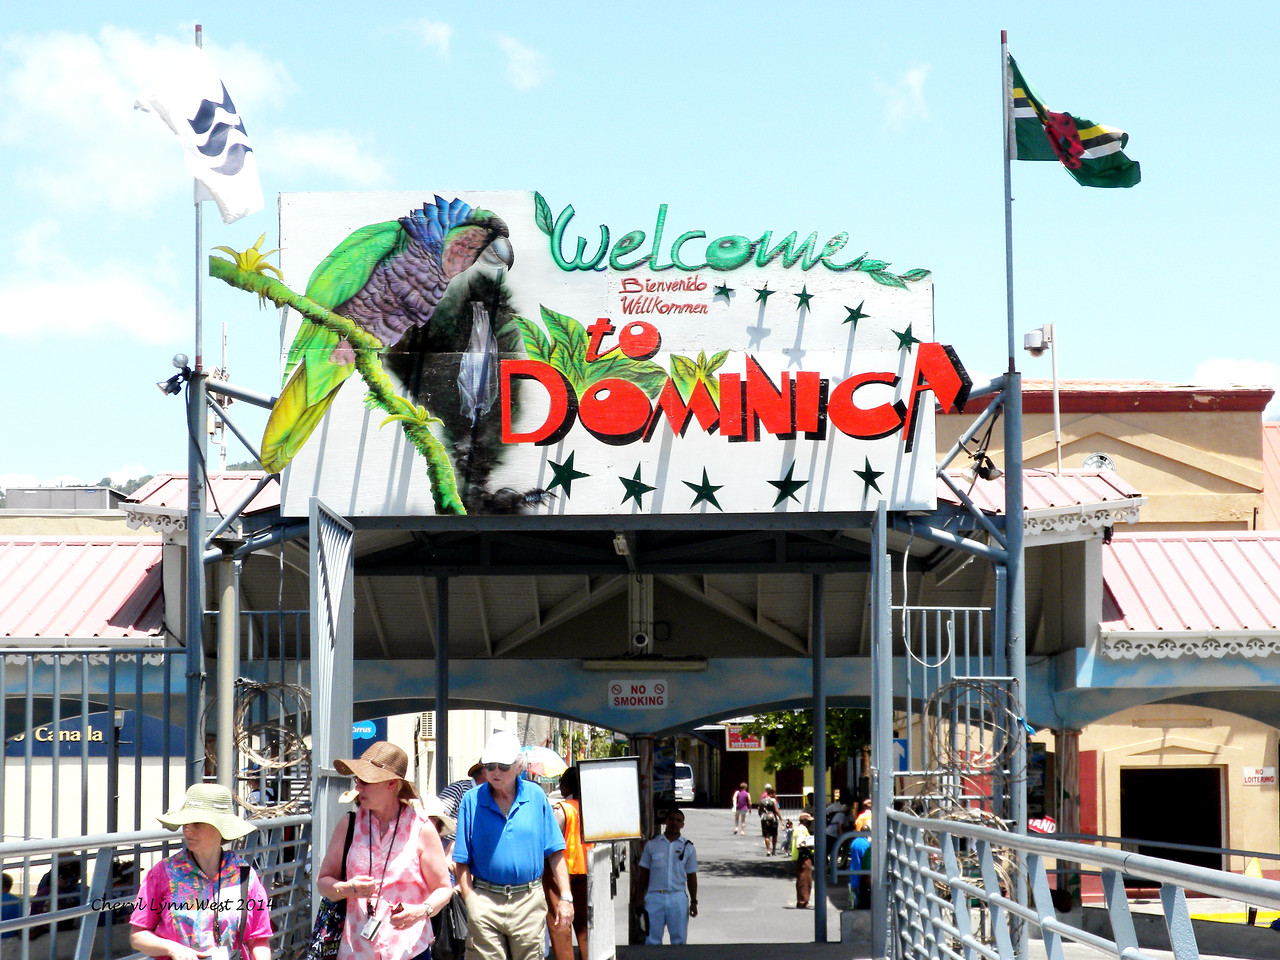 Dominica - Welcome Sign (March 23, 2014)